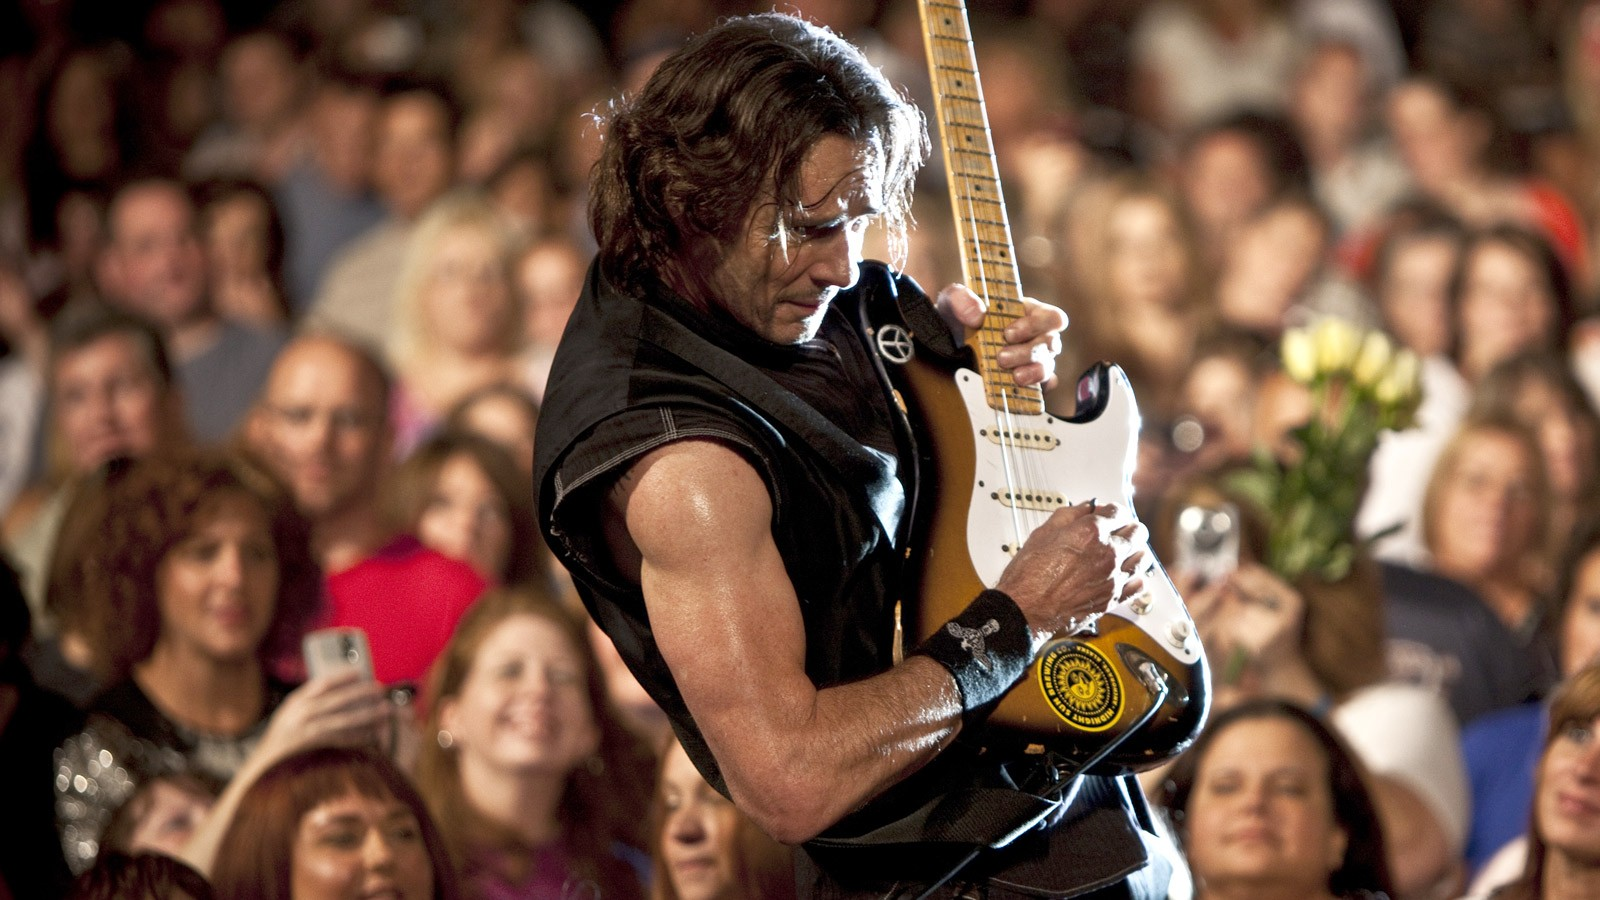 Rick Springfield on tour now